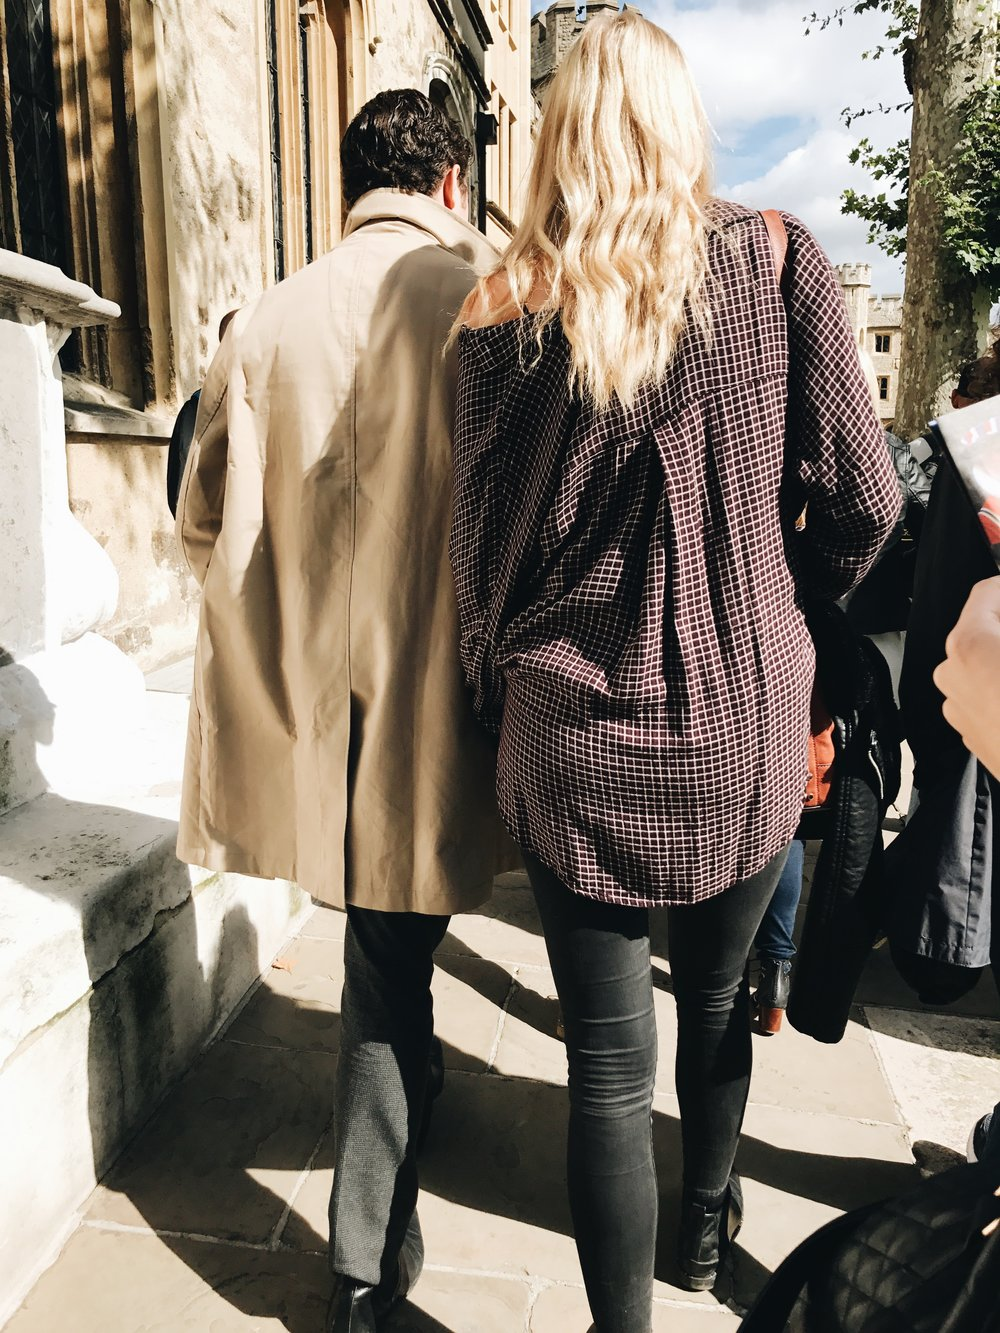 London-street-fashion-chuck-and-blair-gossip-girl.jpg